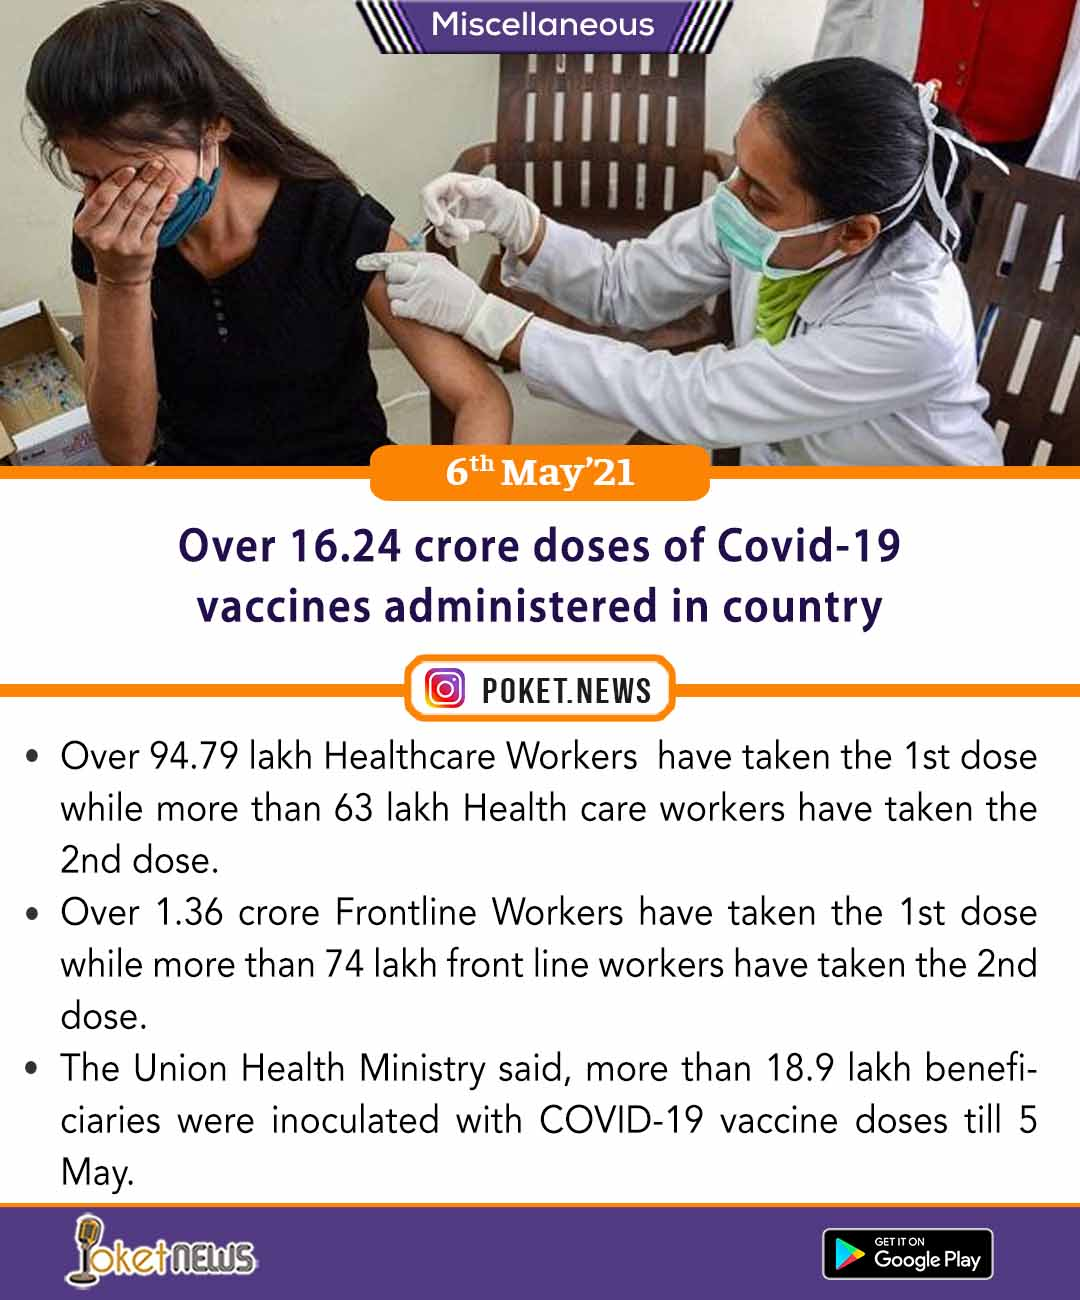 Over 16.24 crore doses of Covid-19 vaccines administered in country